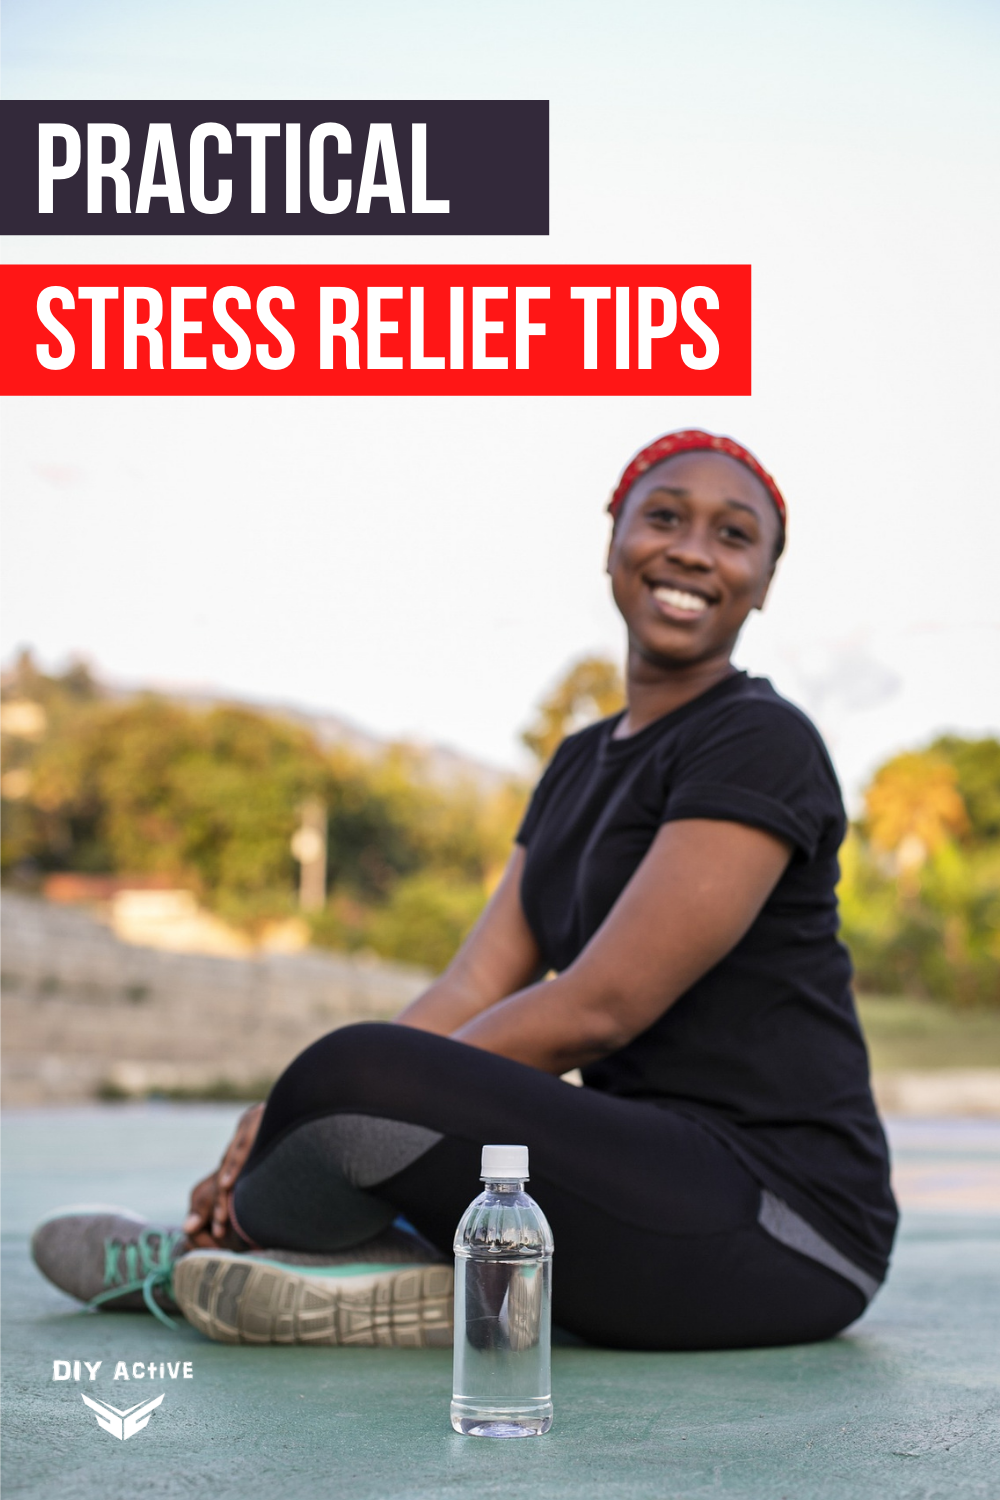 Practical Stress Relief Tips You Can Implement Today